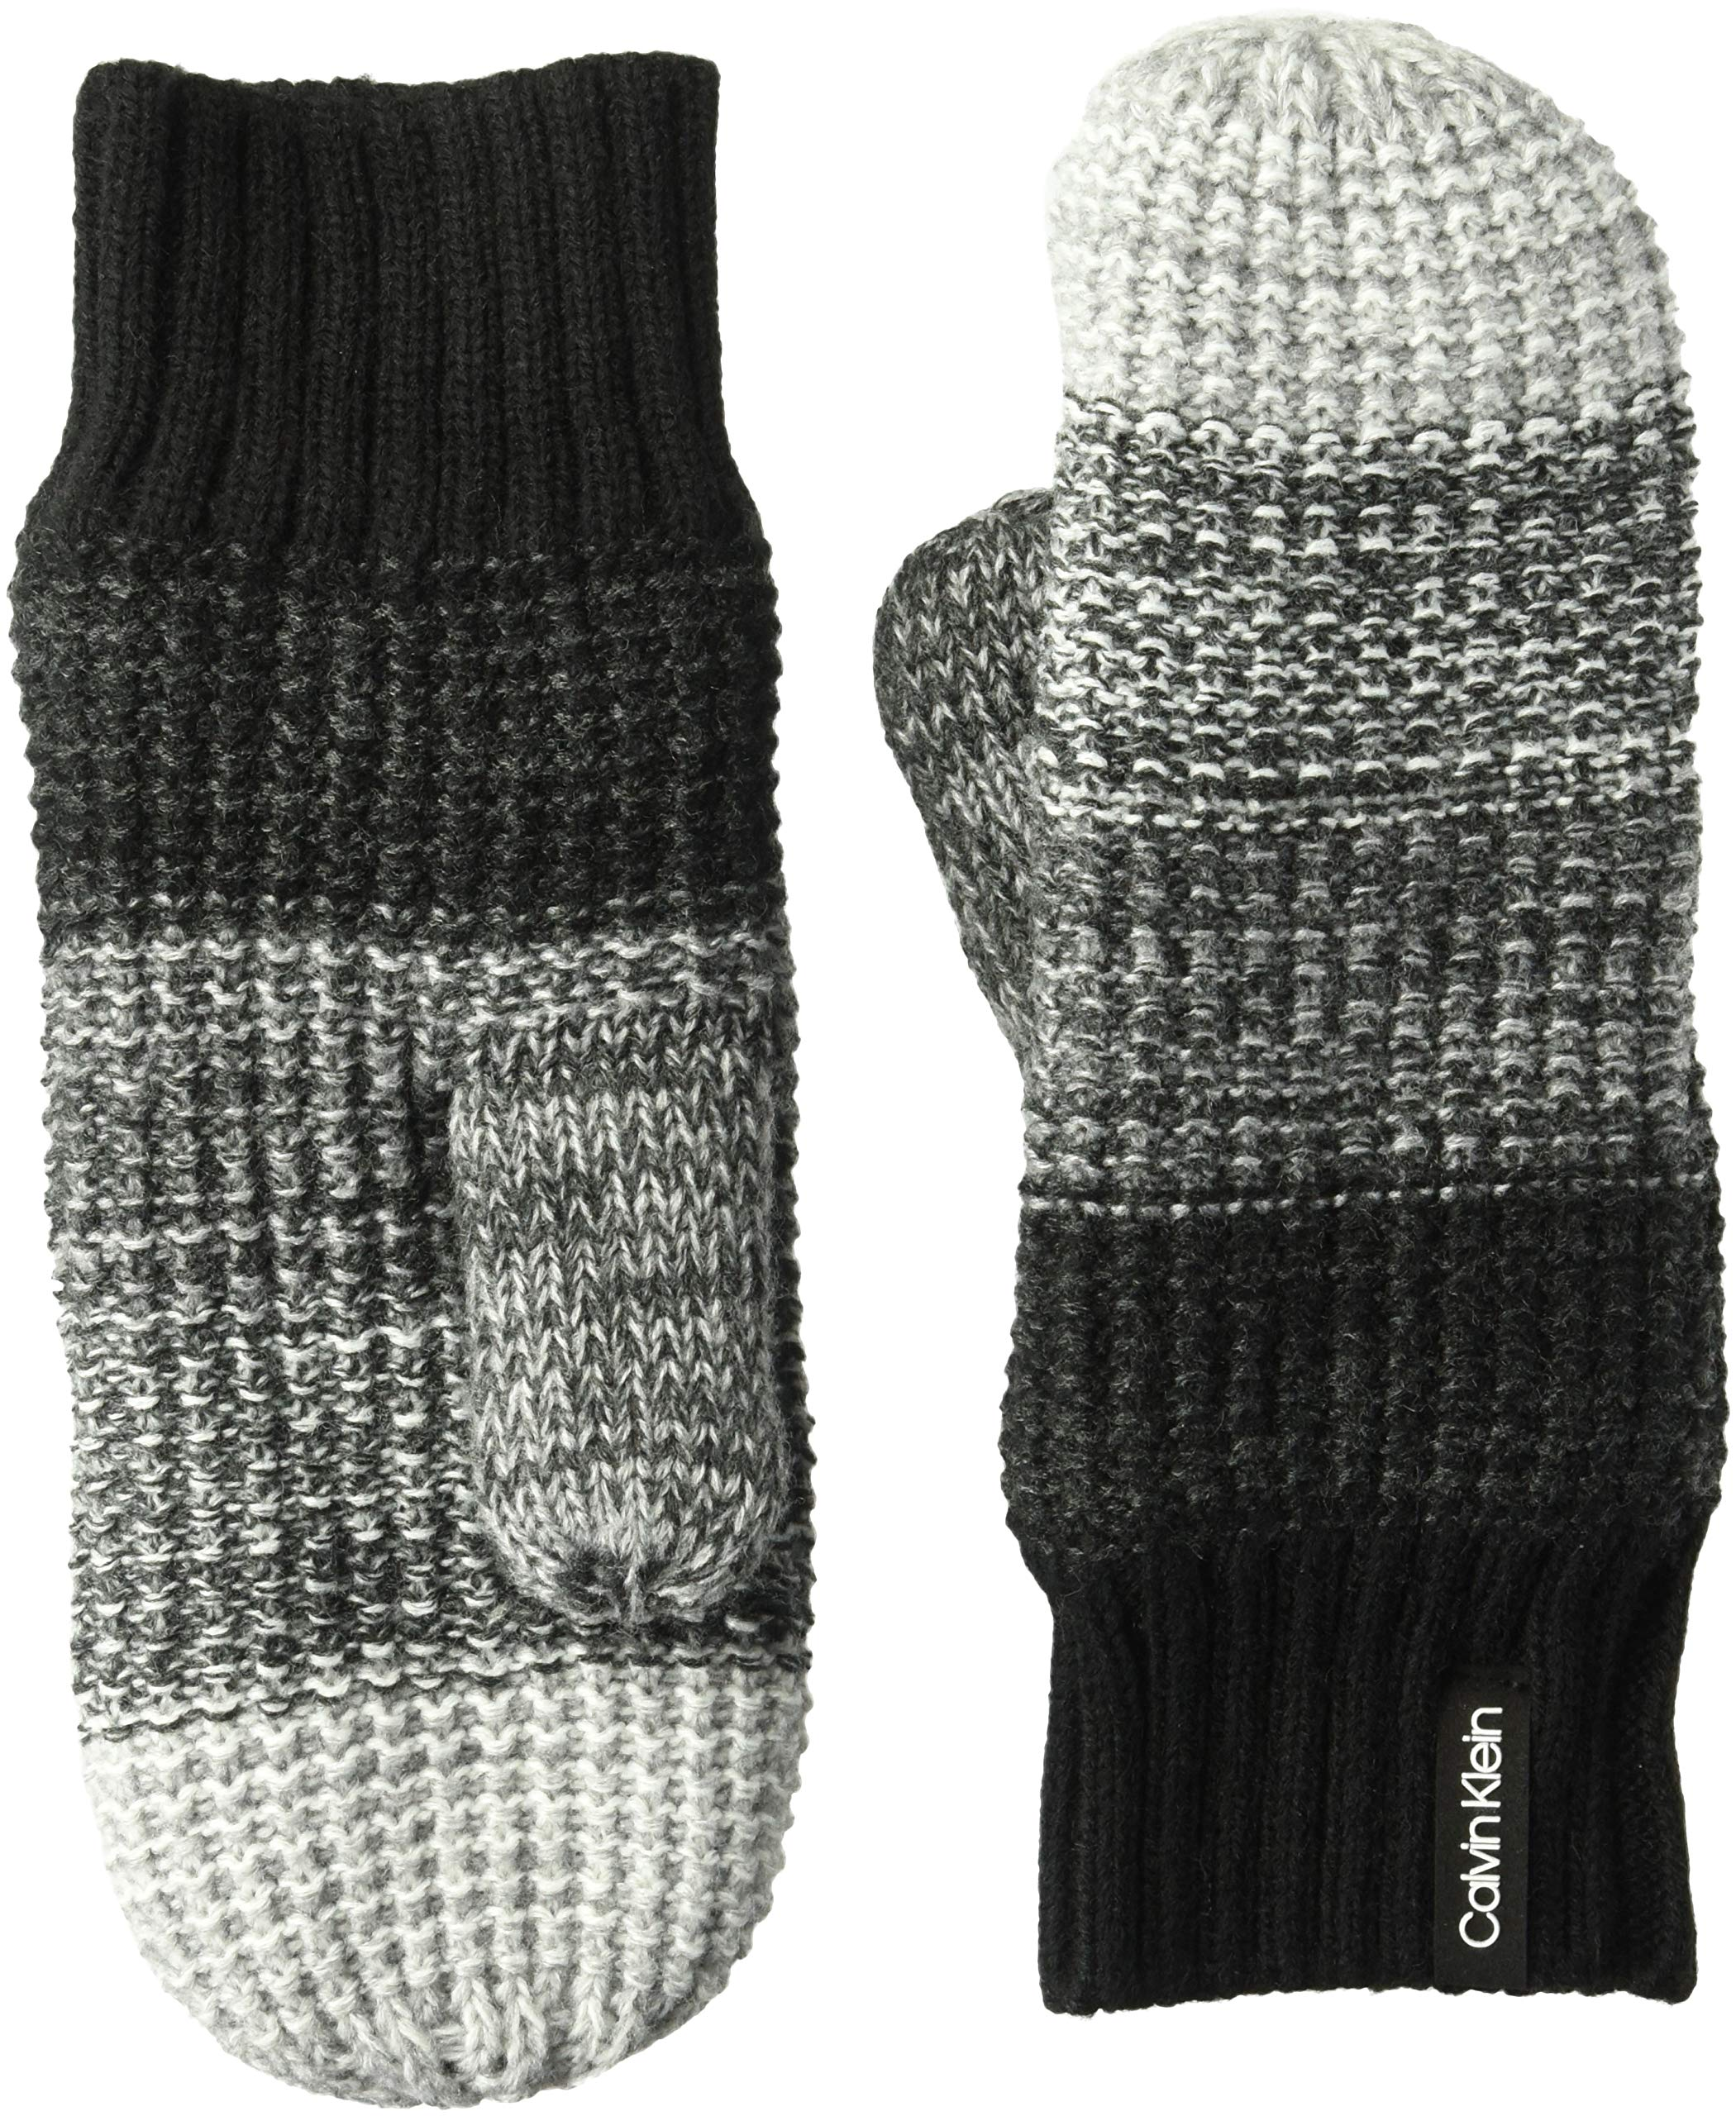 Calvin Klein Women's Ombre Knit Infinity Mittens, black, O/S by Calvin Klein